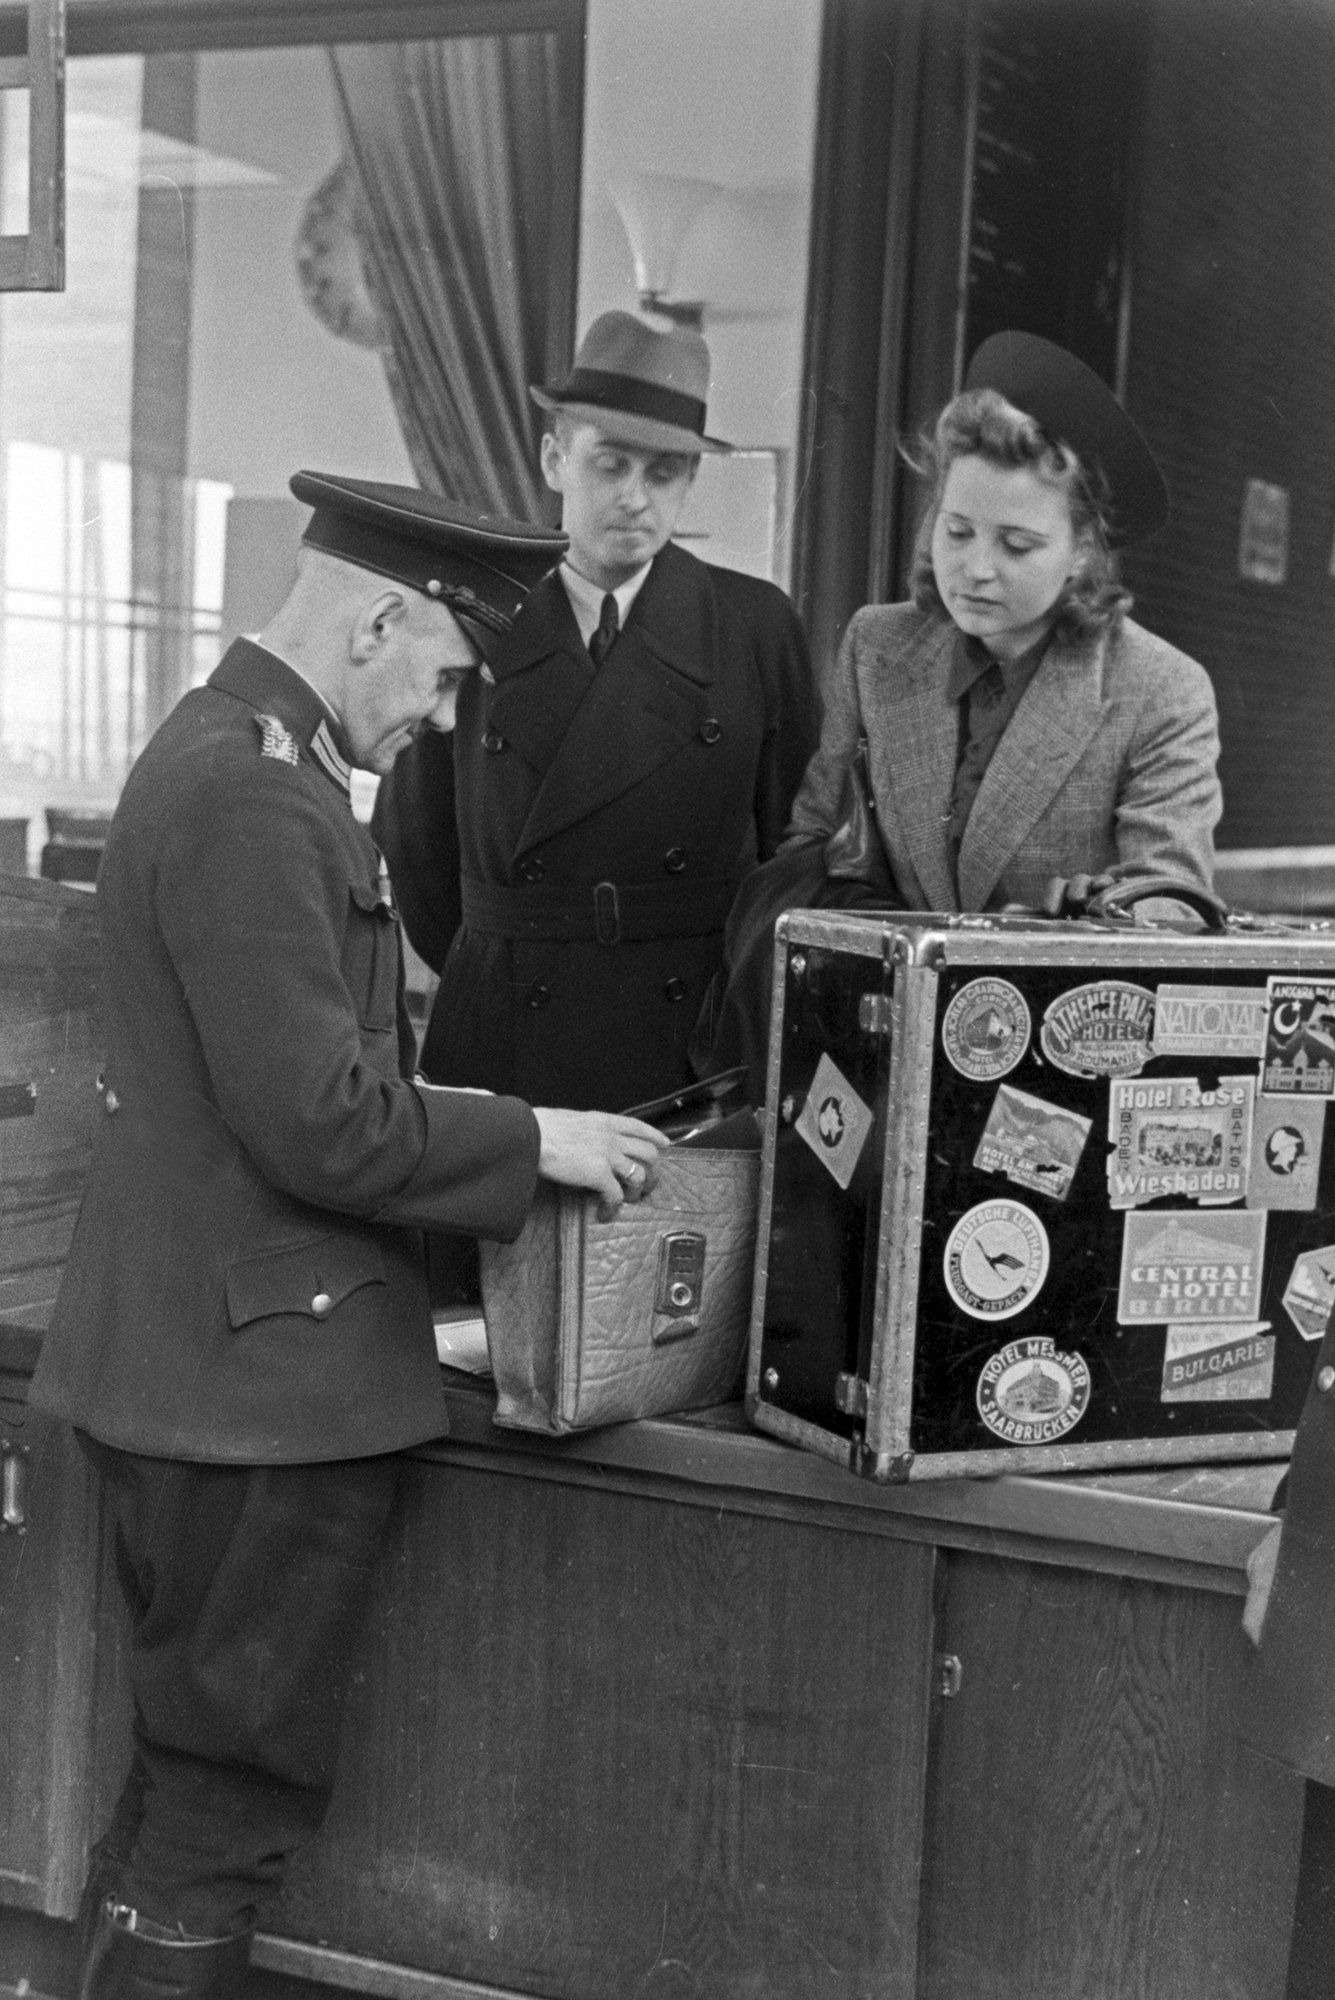 a man and woman watch as a customs officer goes through their suitcases